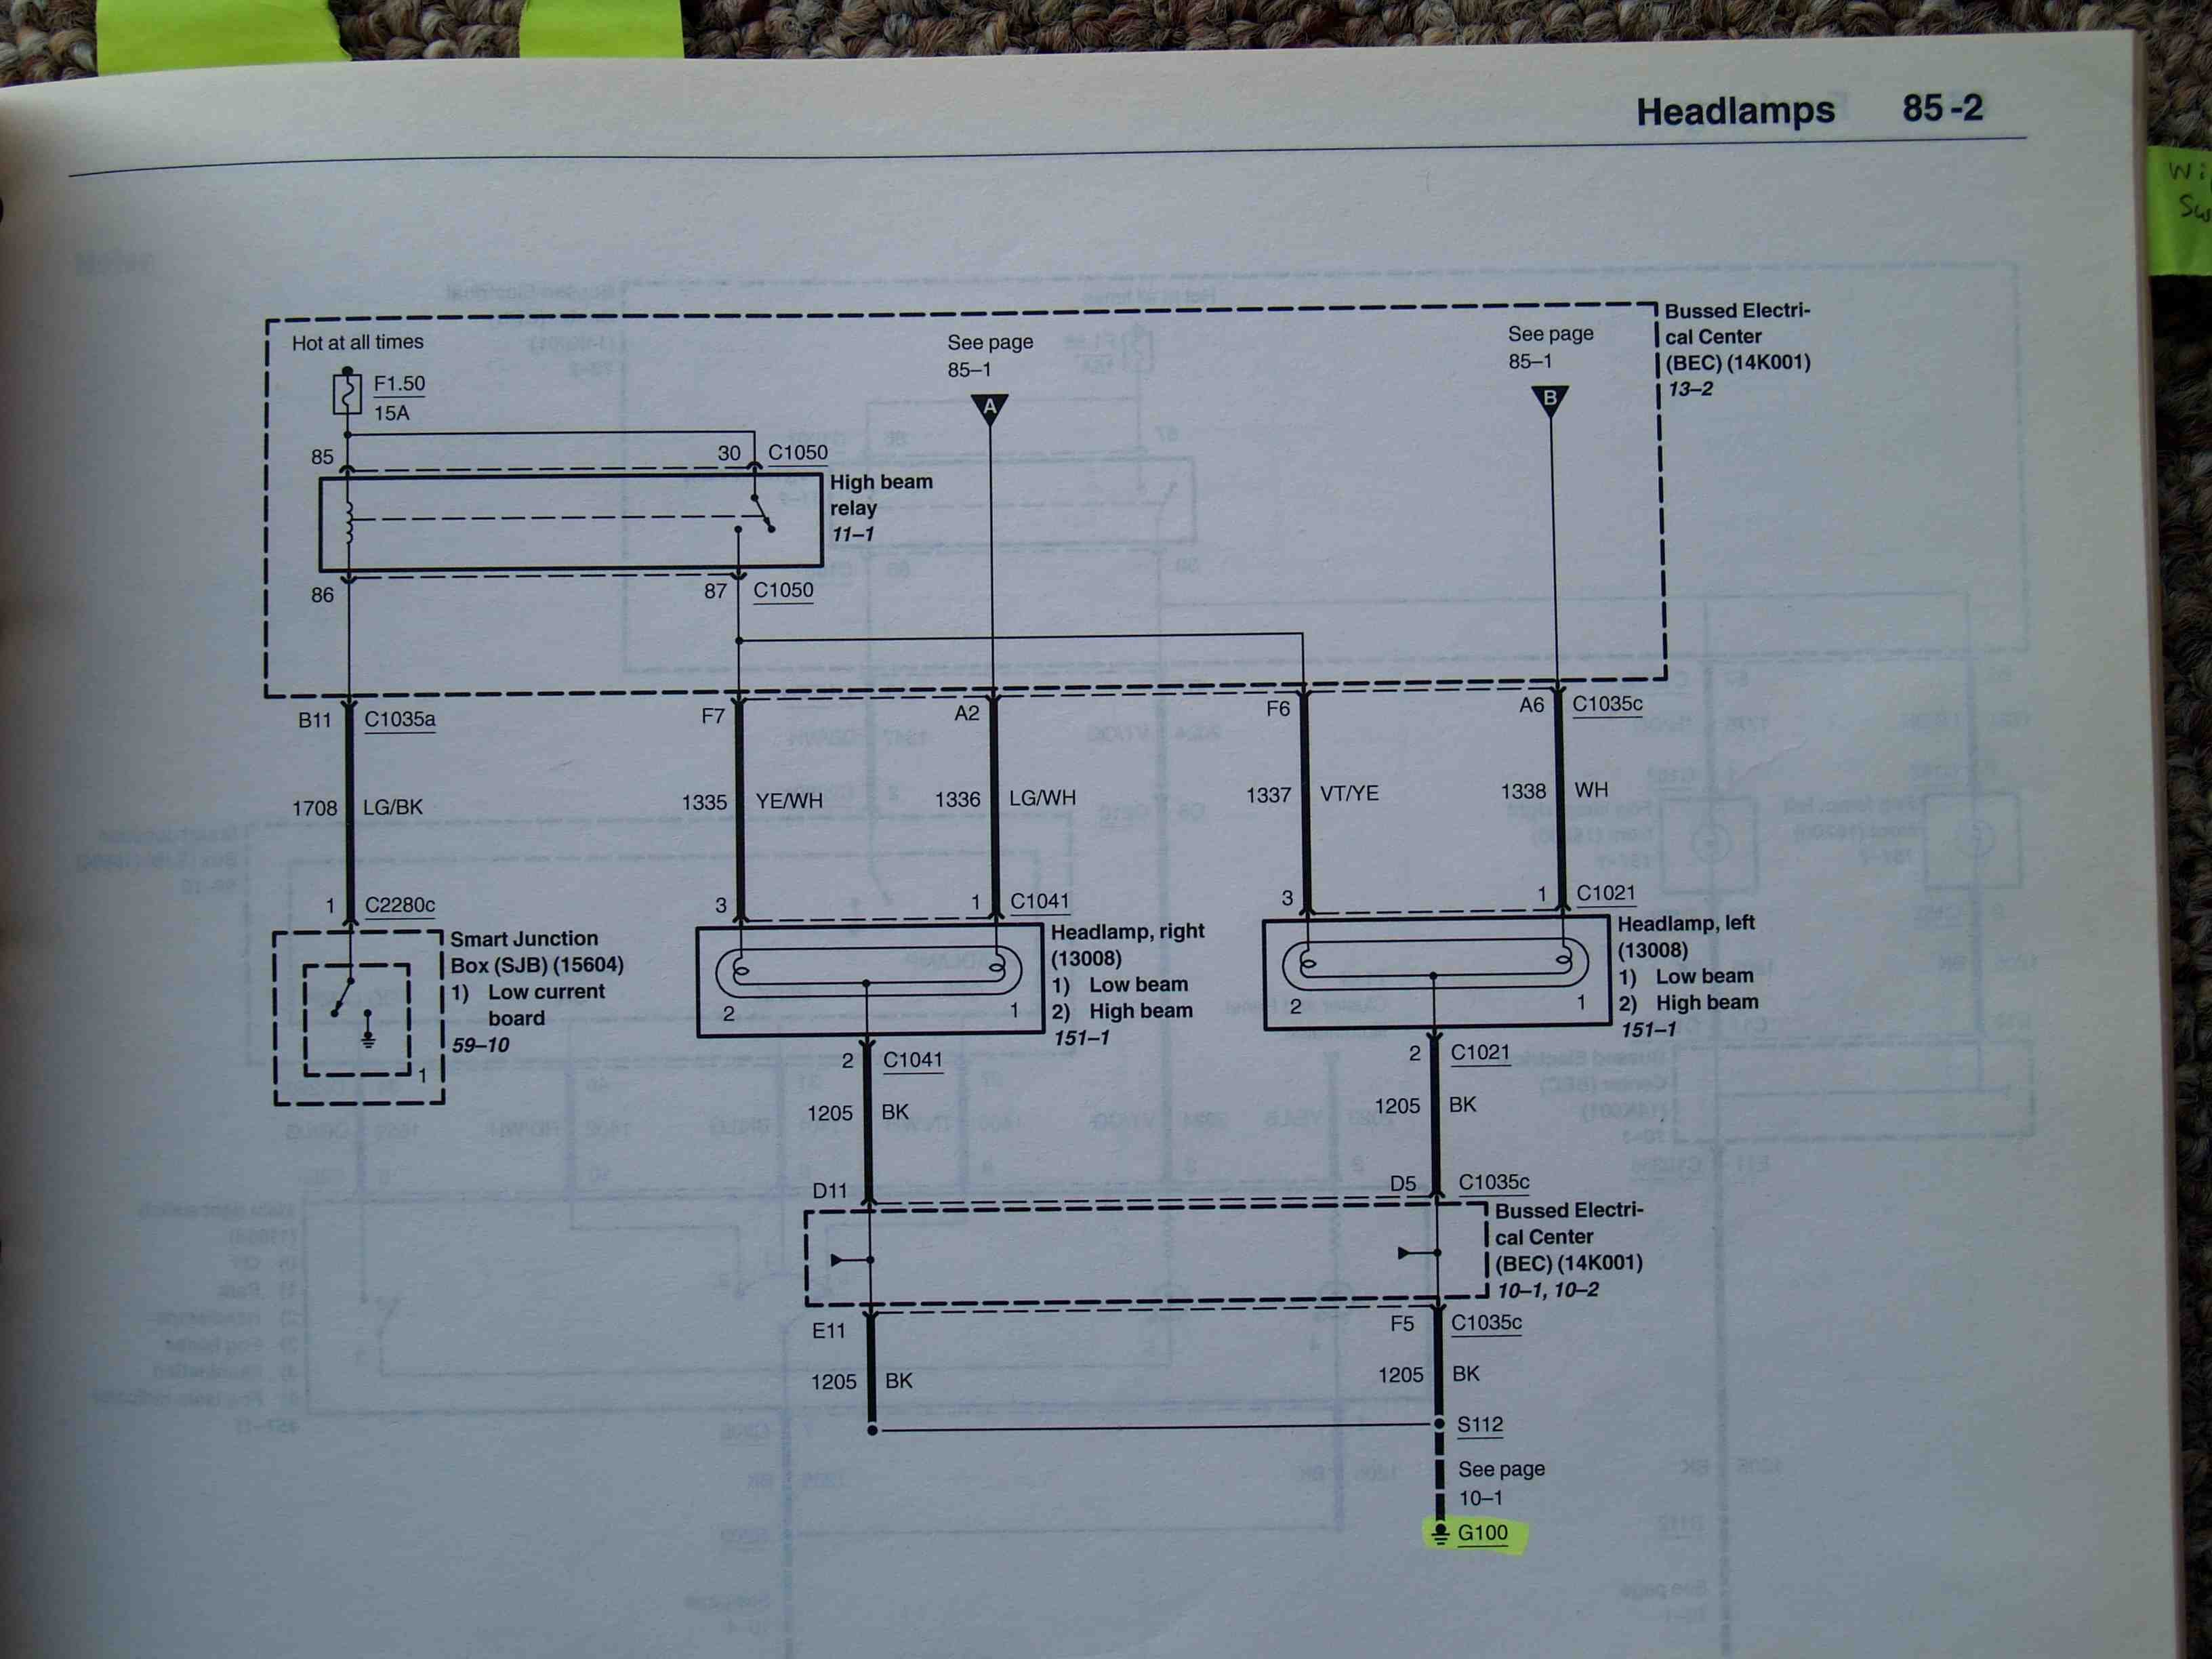 2008 equinox wiring diagram 2008 gt headlight wiring diagram? - ford mustang forum 2008 stratoliner wiring diagram